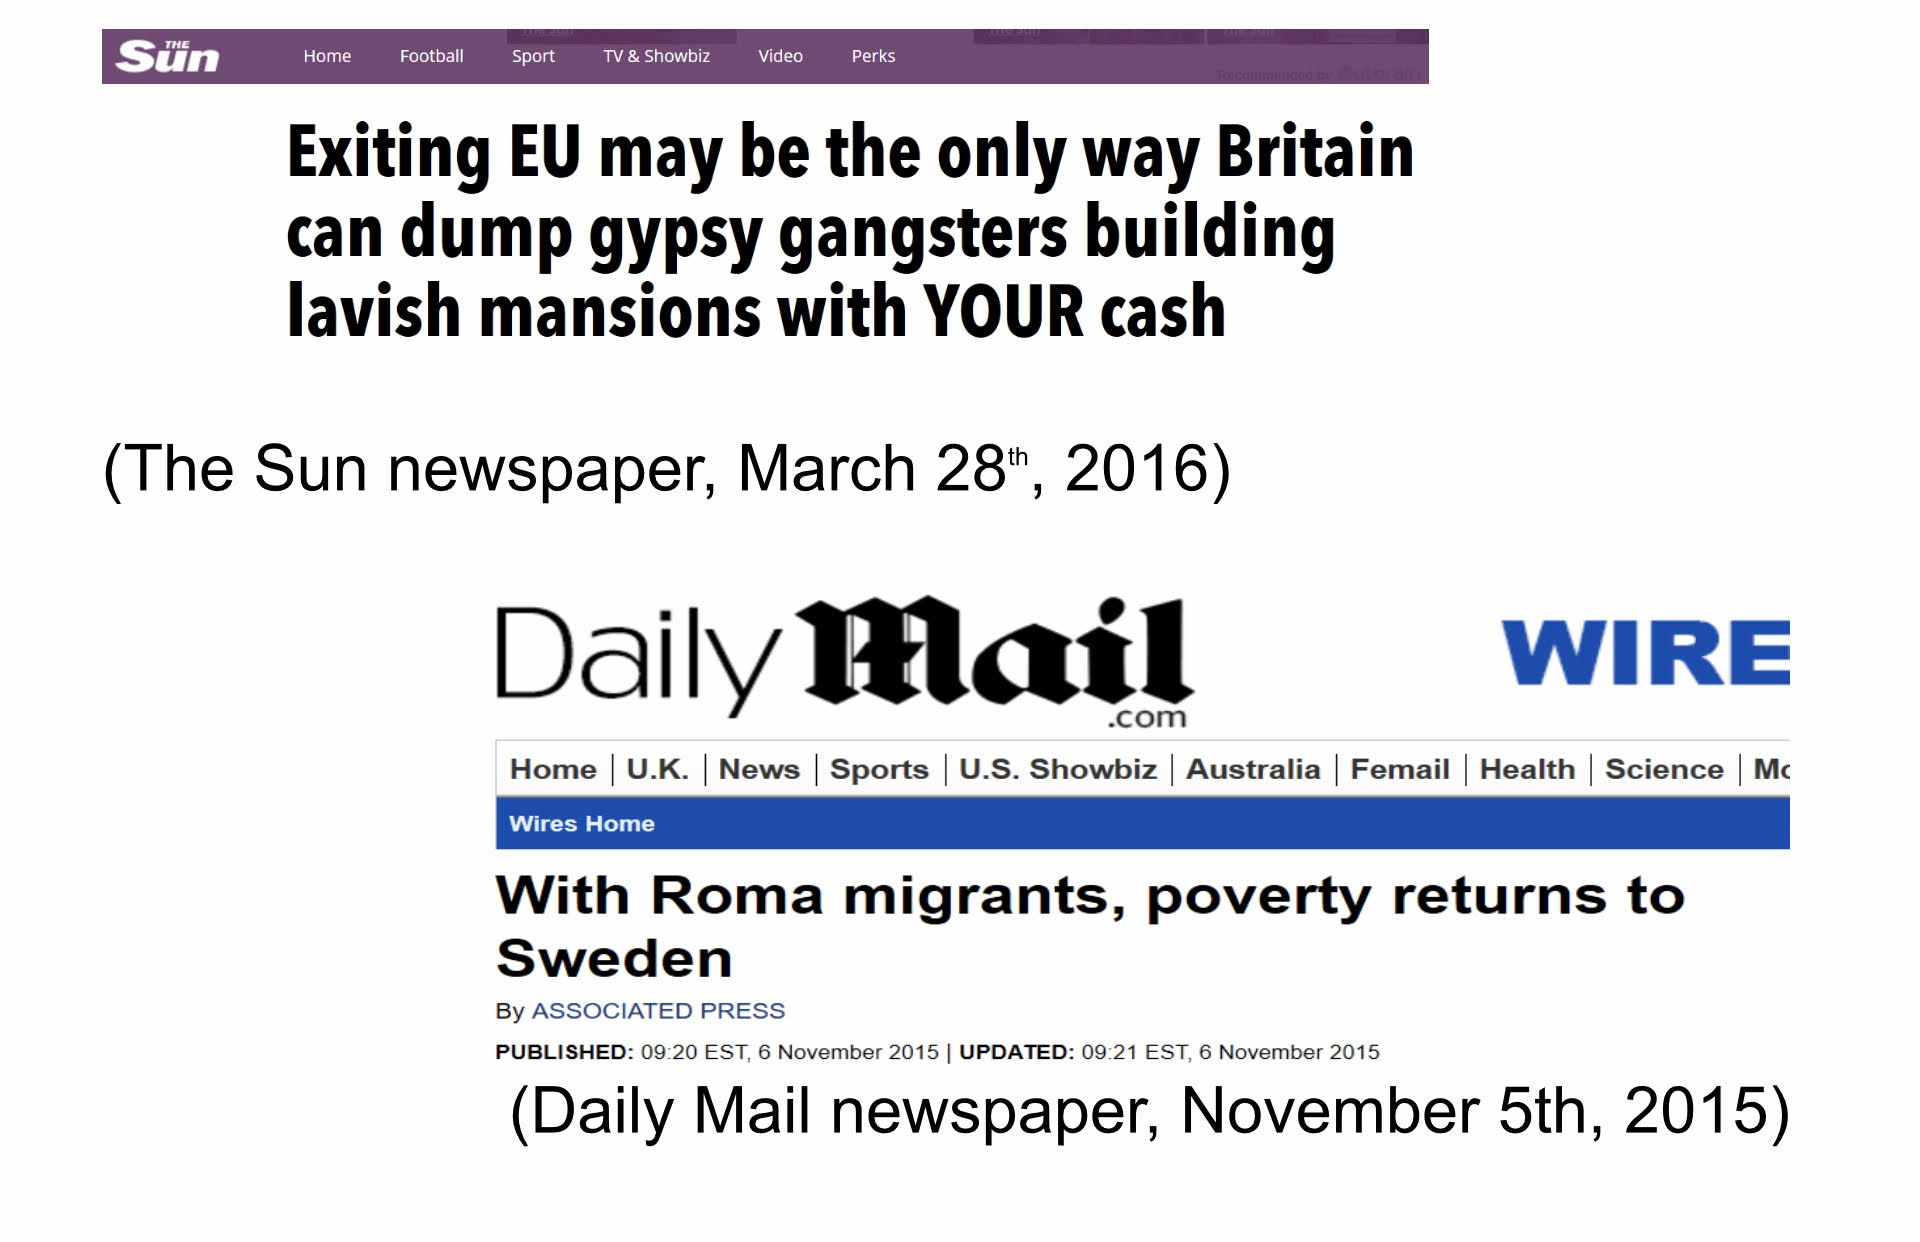 (Daily Mail newspaper, November 5th, 2015)